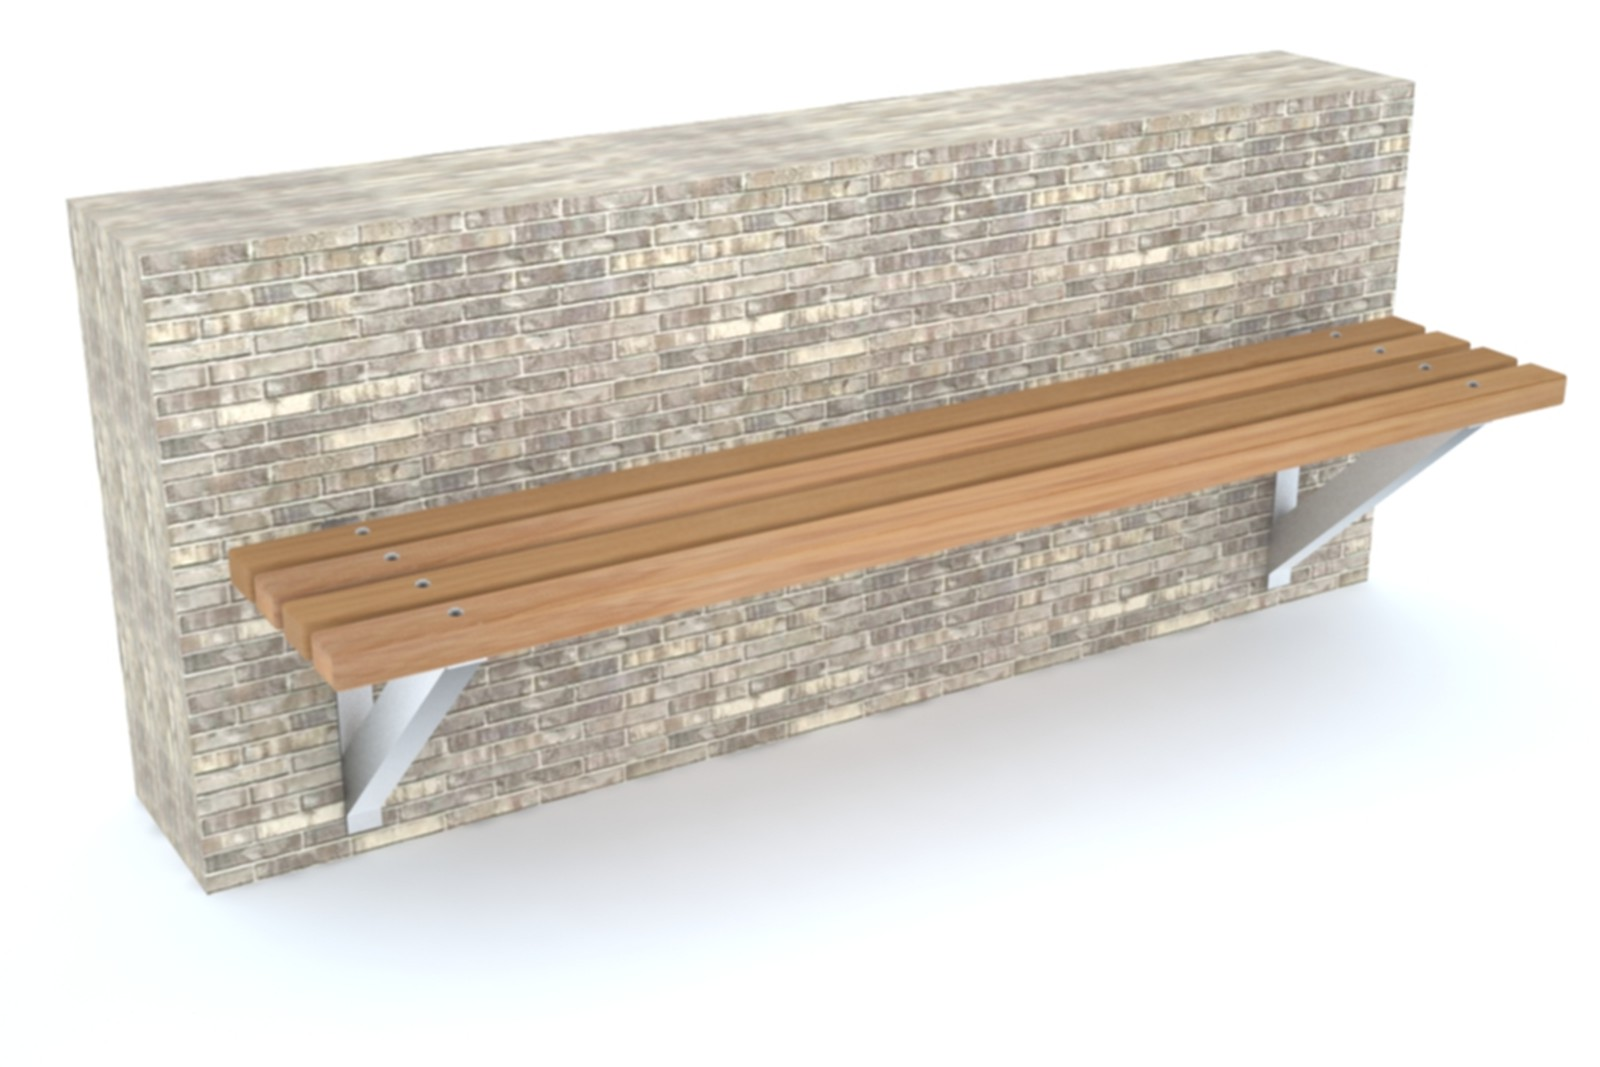 60sbe08 - Bexley side fixed wall mounted bench